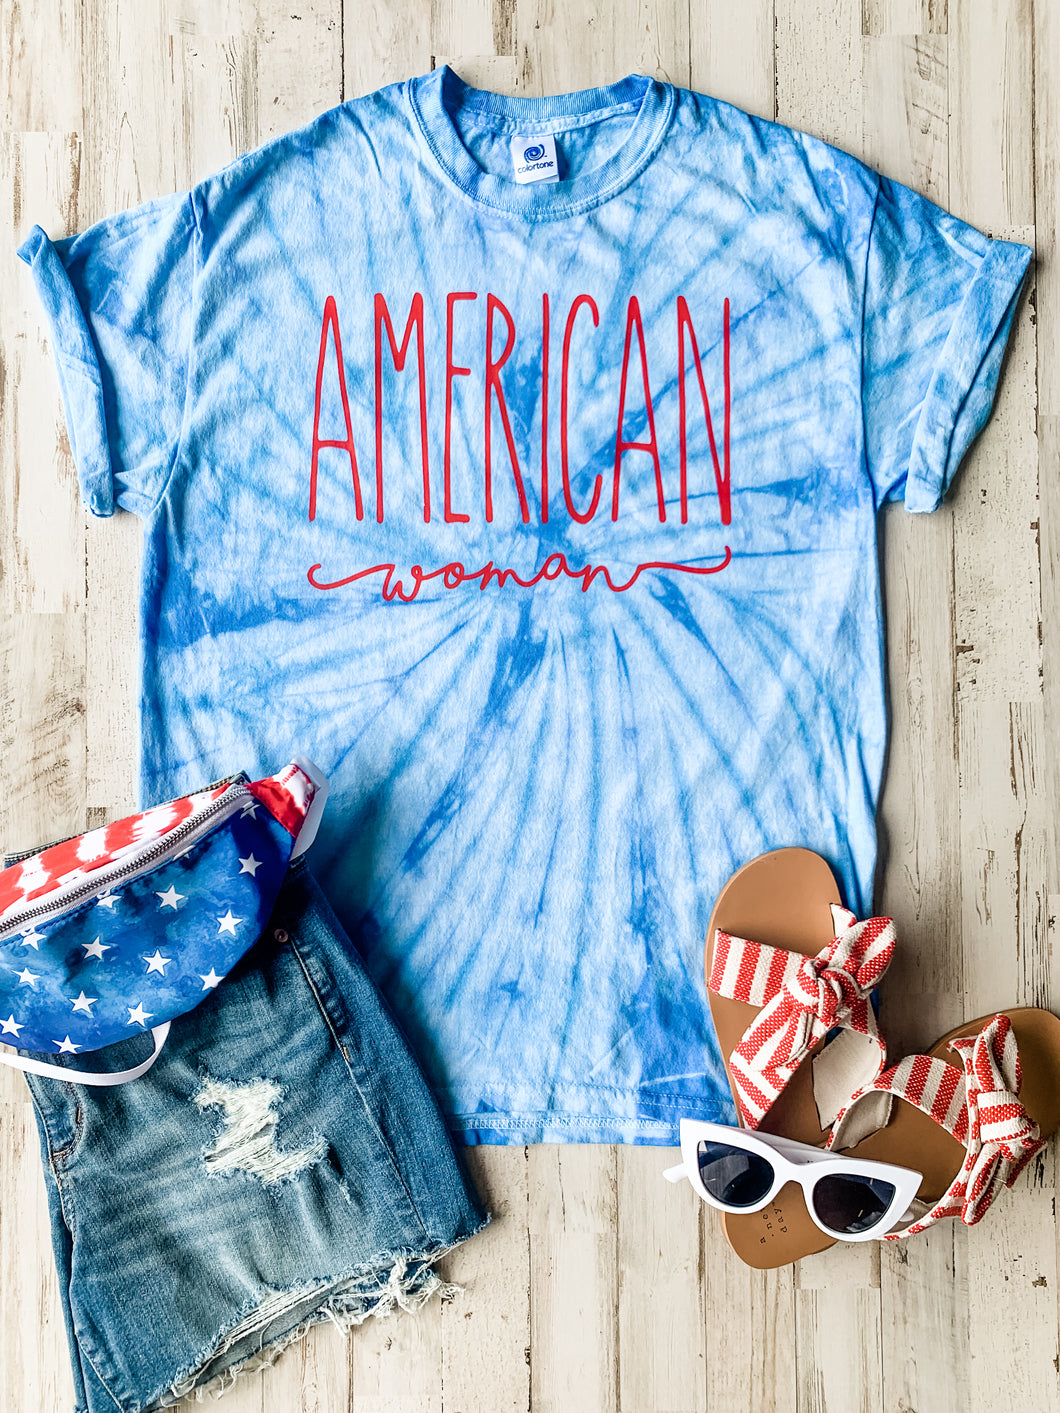 American Woman (Red Ink) Baby Blue Tie Dye Tee DROPSHIP